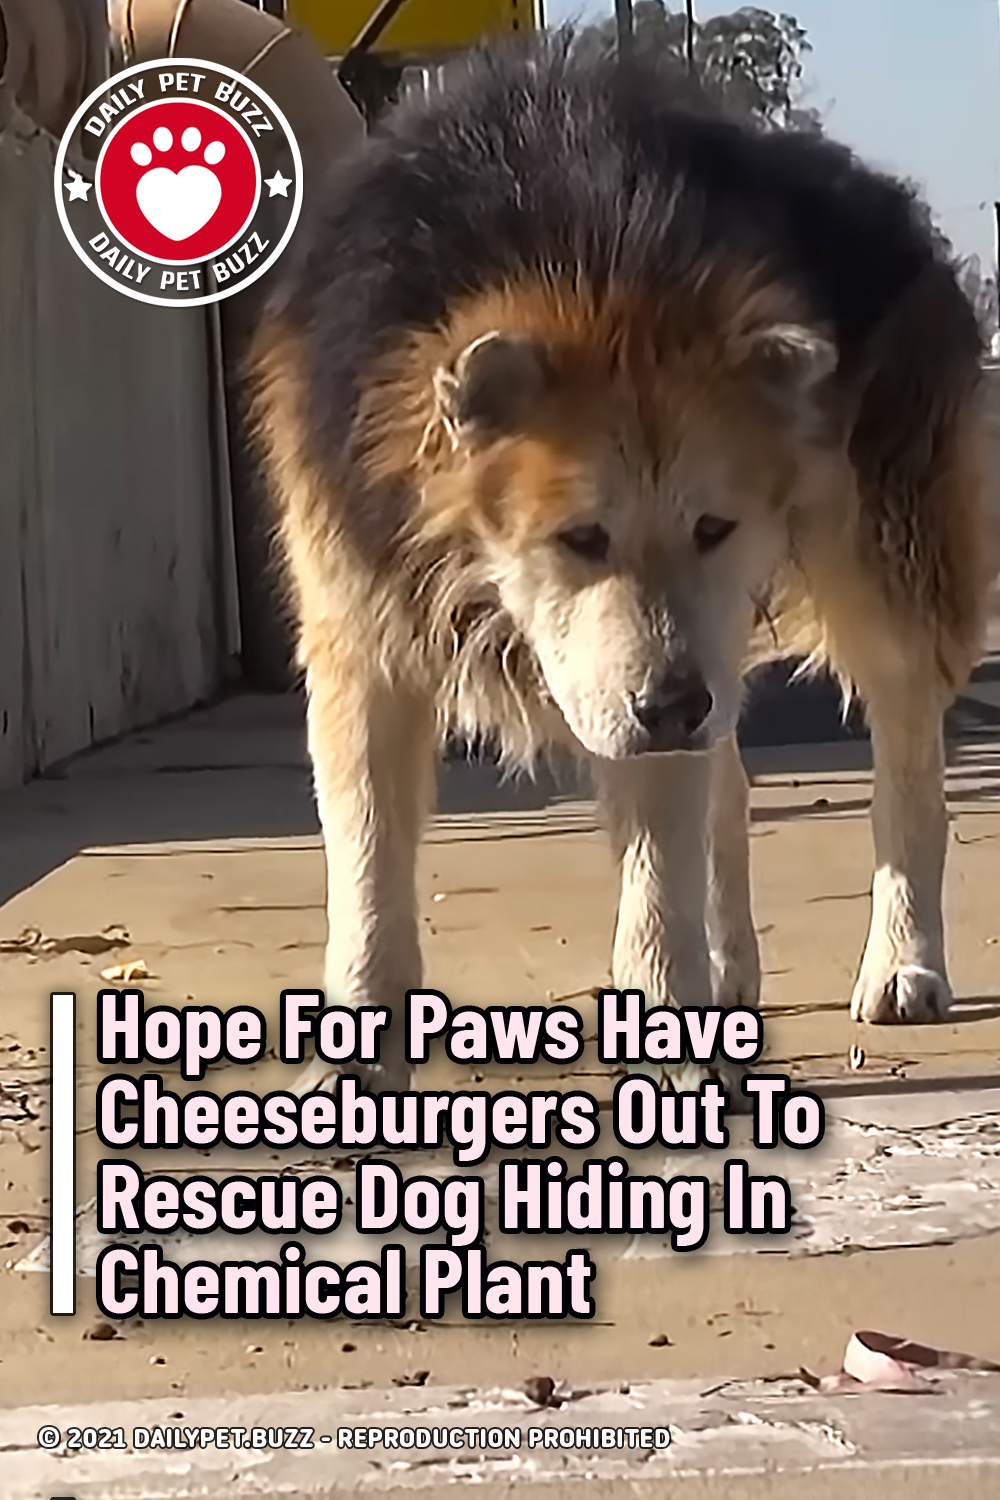 Hope For Paws Have Cheeseburgers Out To Rescue Dog Hiding In Chemical Plant